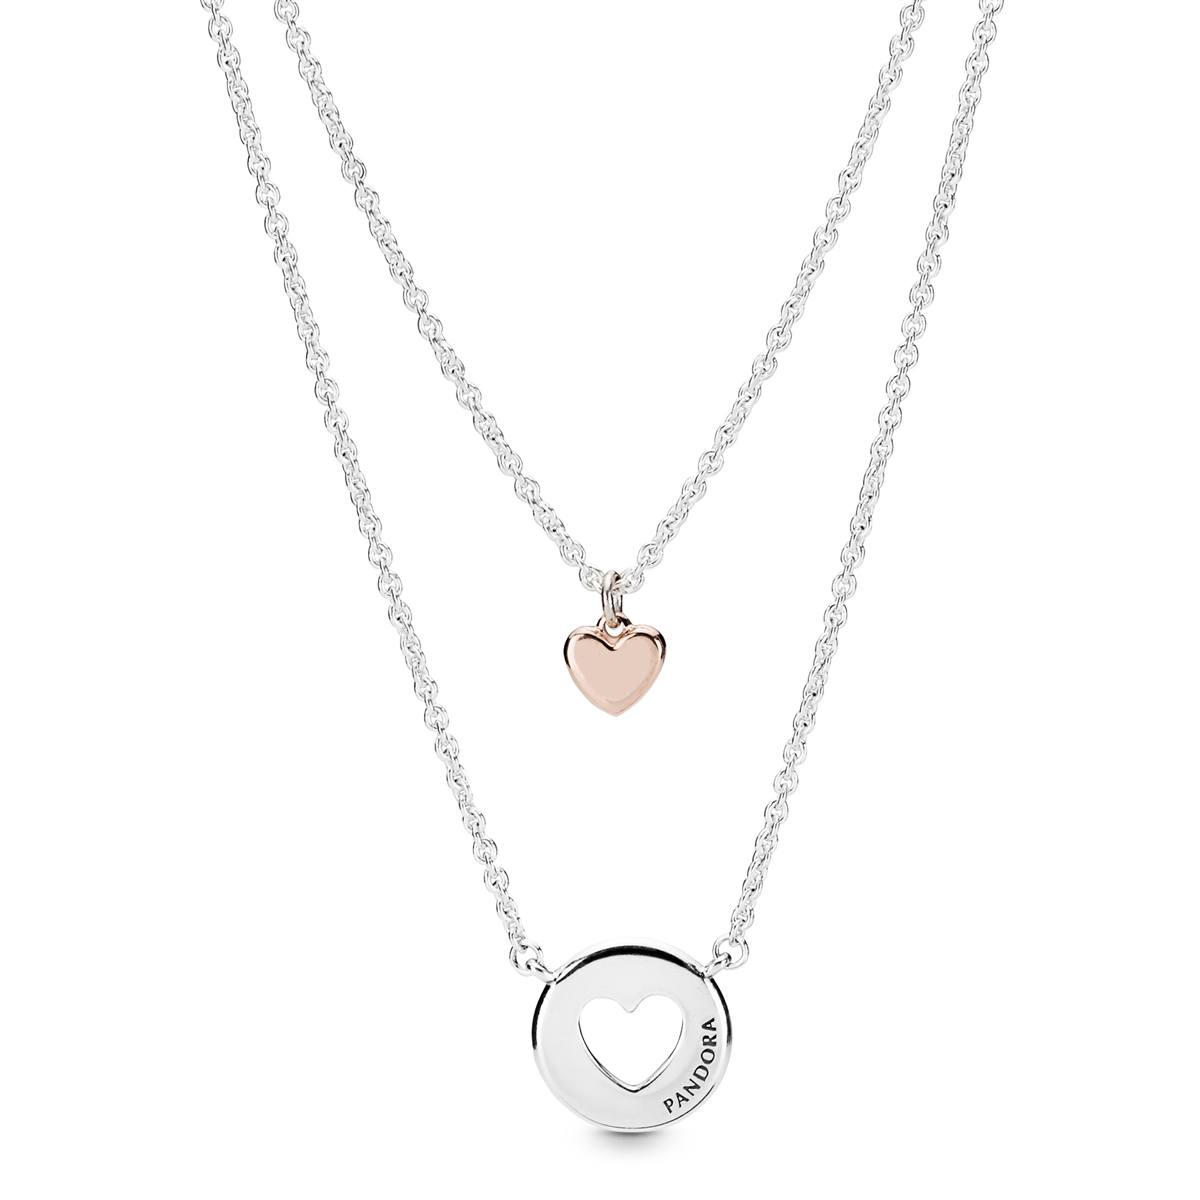 c092cf946 PANDORA Rose™ Layered Heart Necklaces 388083-50 ...